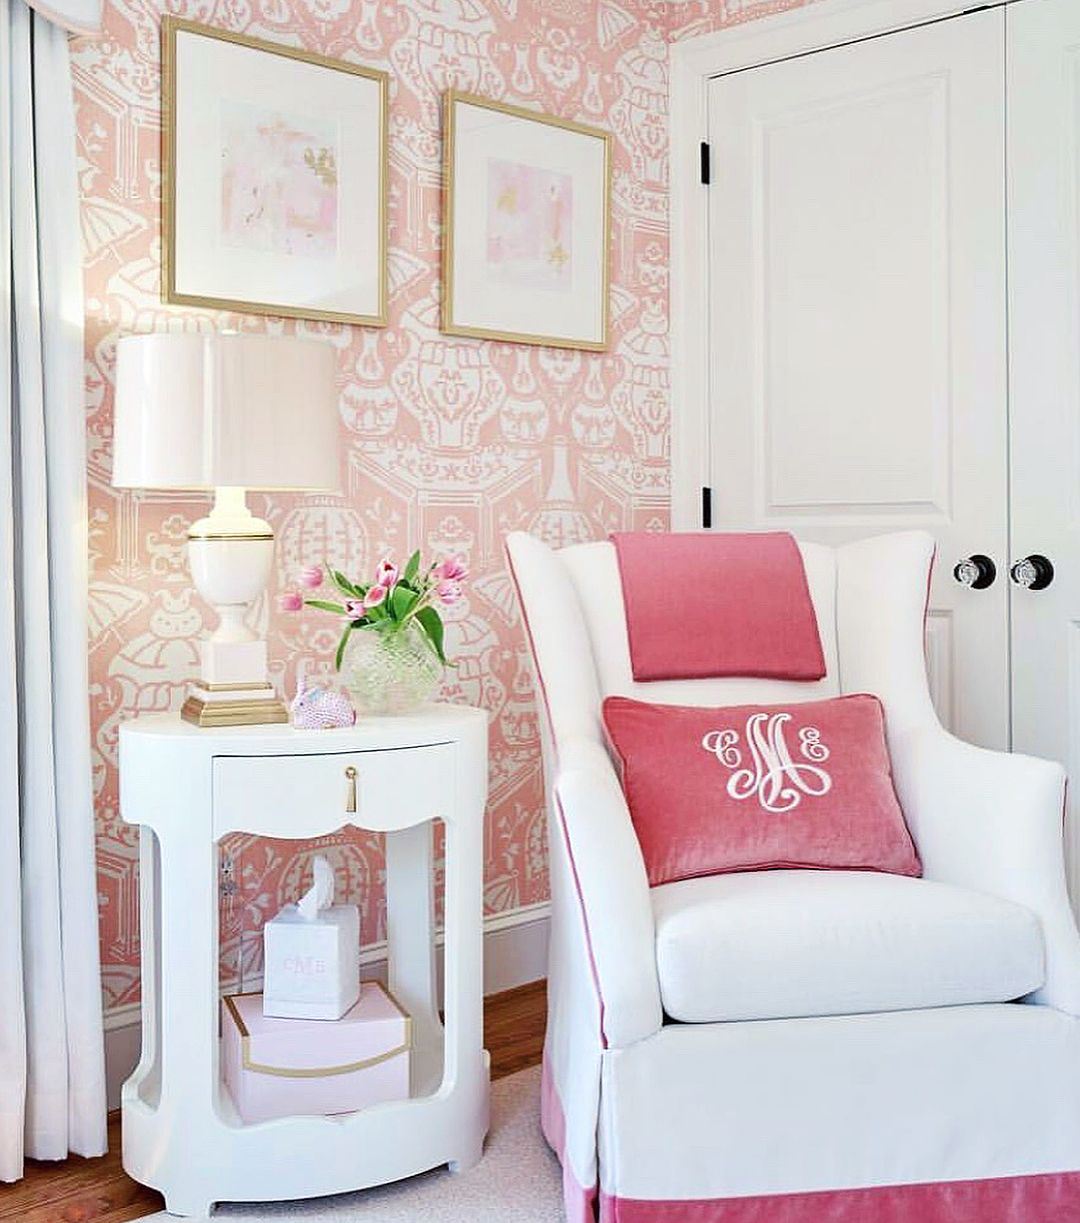 Pretty in pink. 🌸 We love this sophisticated nursery room